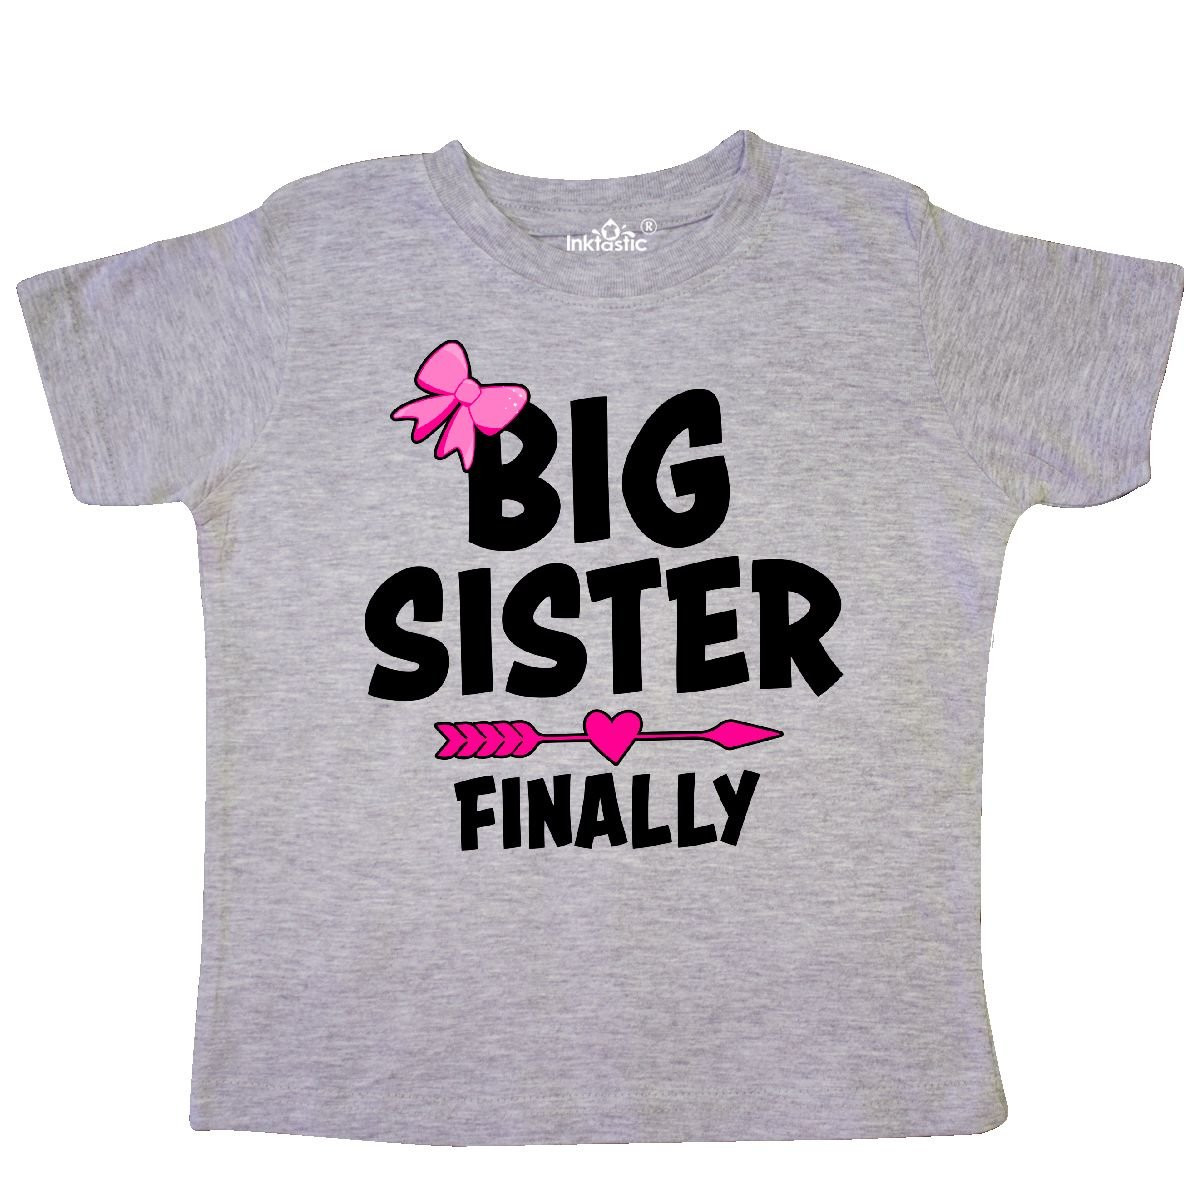 inktastic Big Sister Finally with Bow and Arrow Toddler T-Shirt